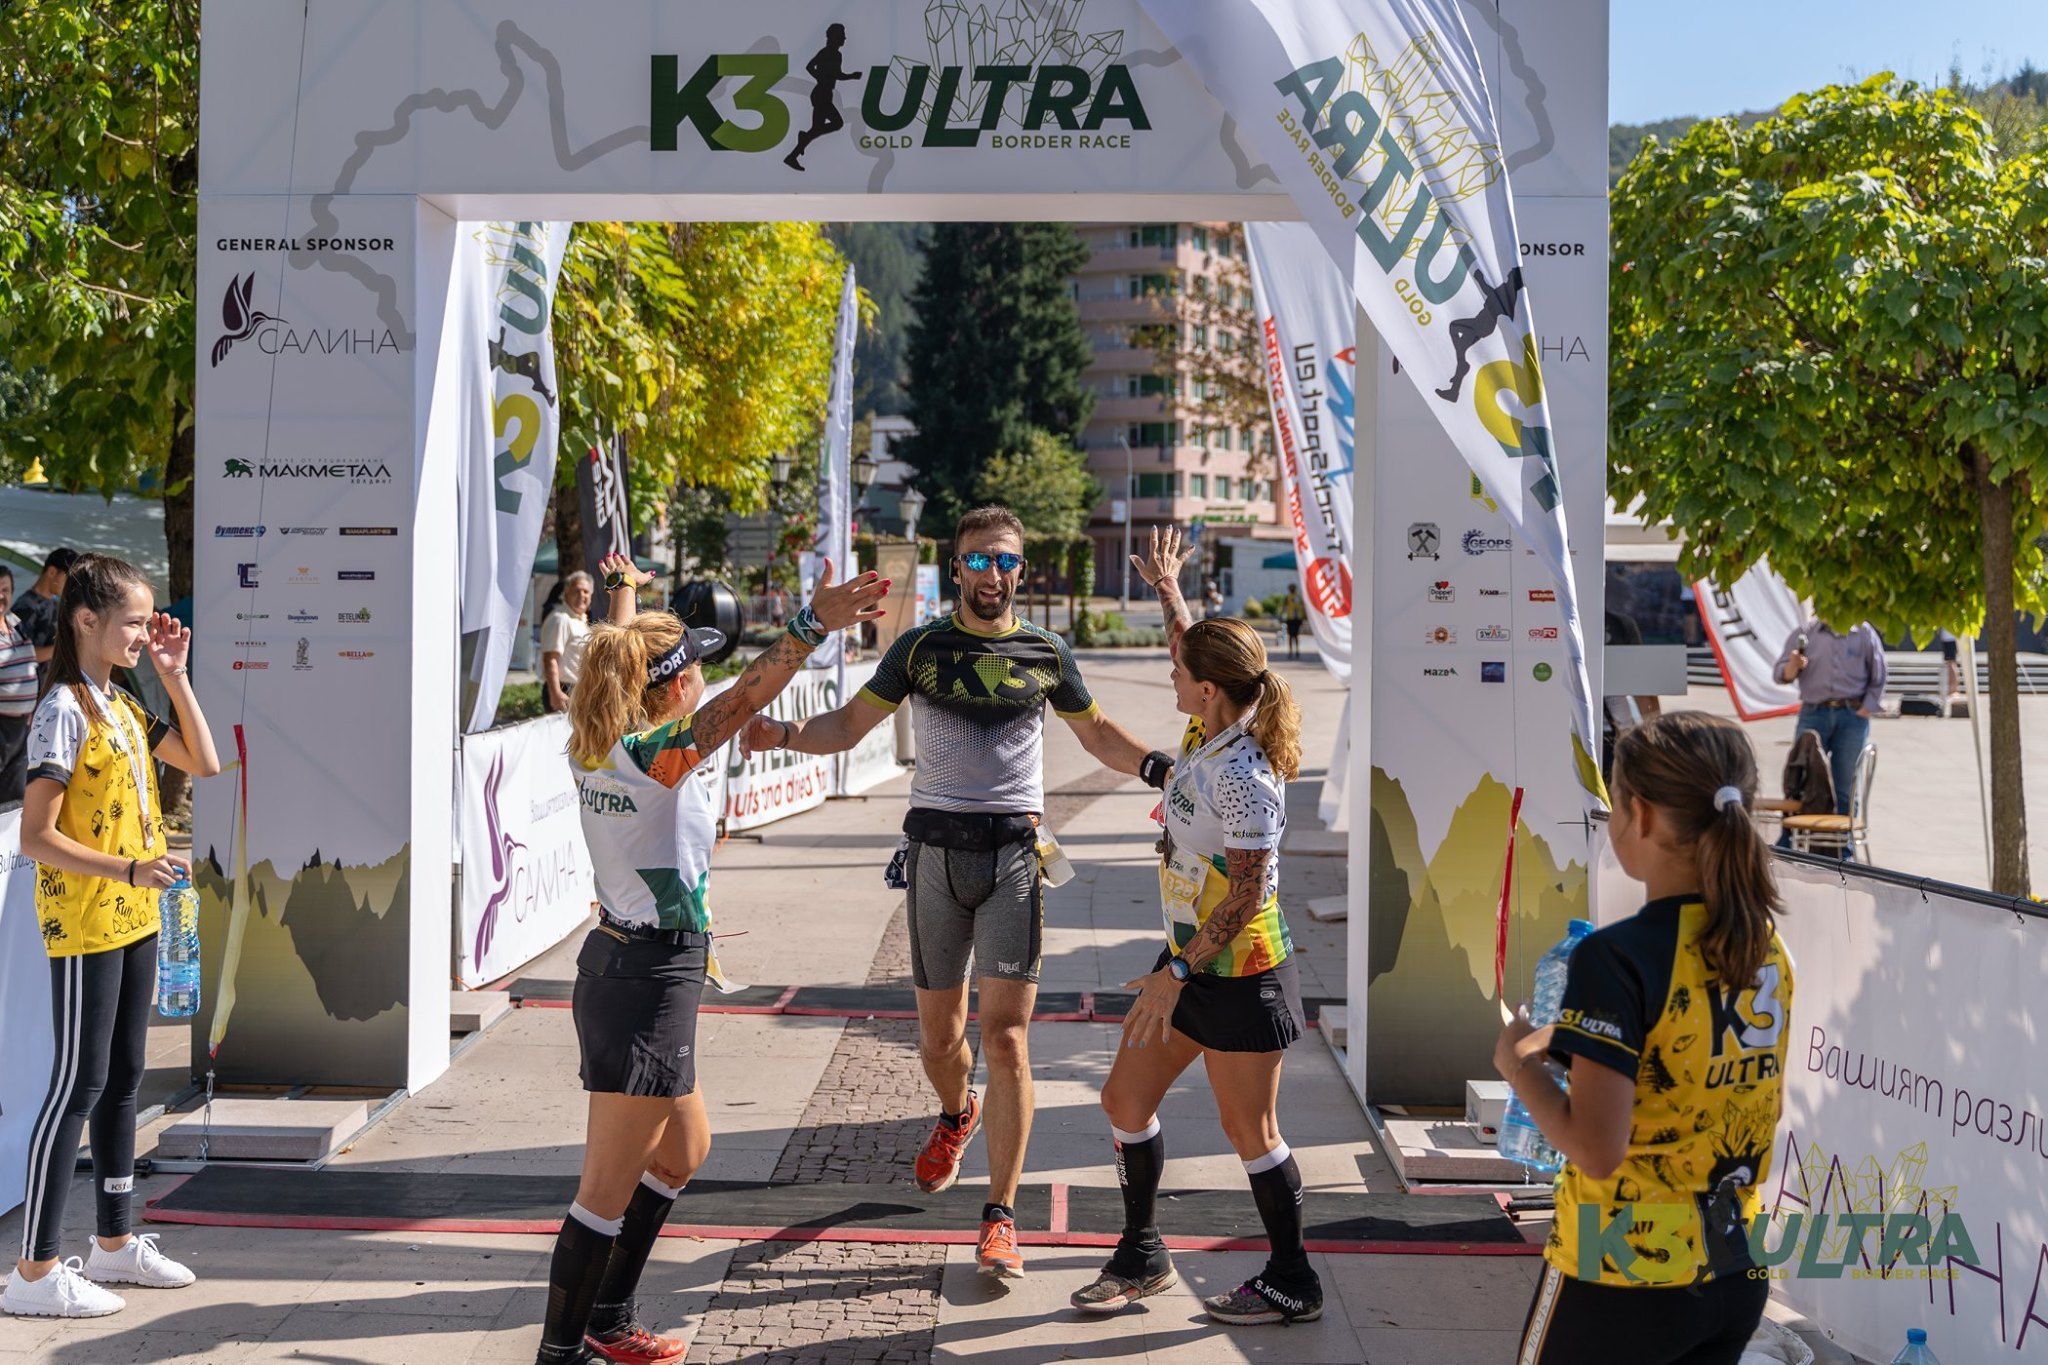 The most memorable moments and most wonderful views from the first edition of our adventure - K3 ULTRA GBR